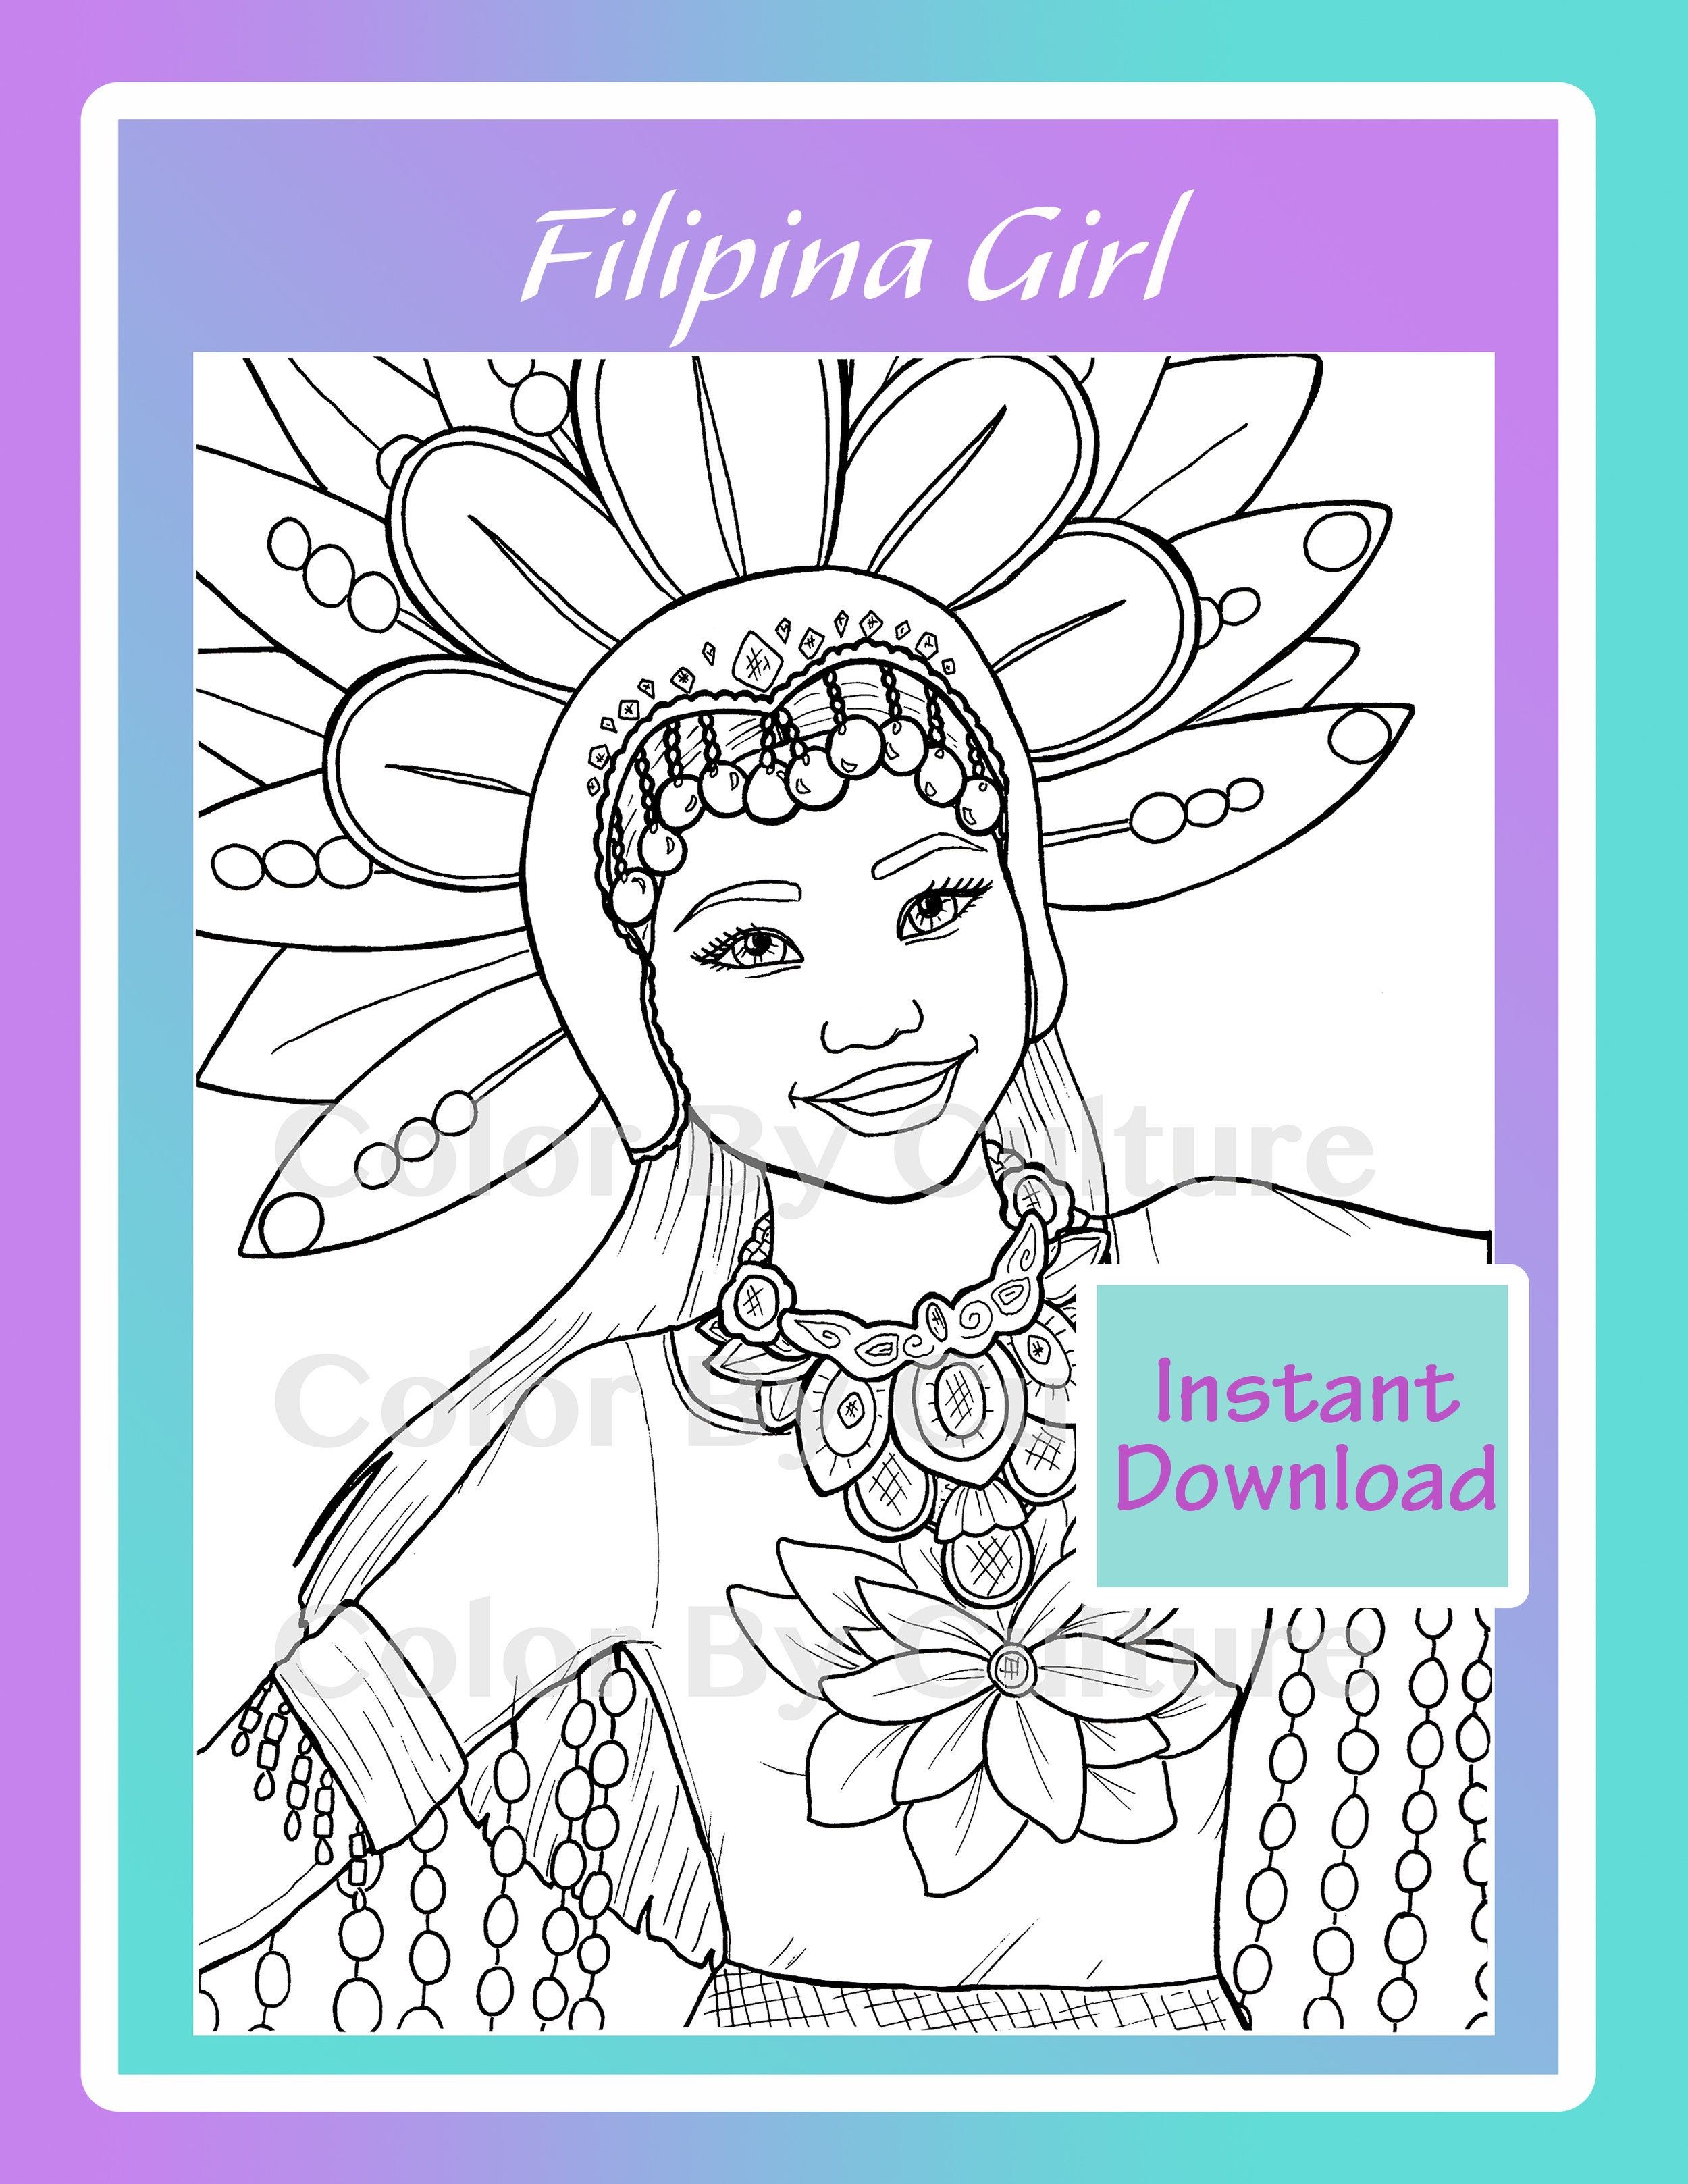 Filipina Girl Coloring Page Mermaid Coloring Pages Coloring